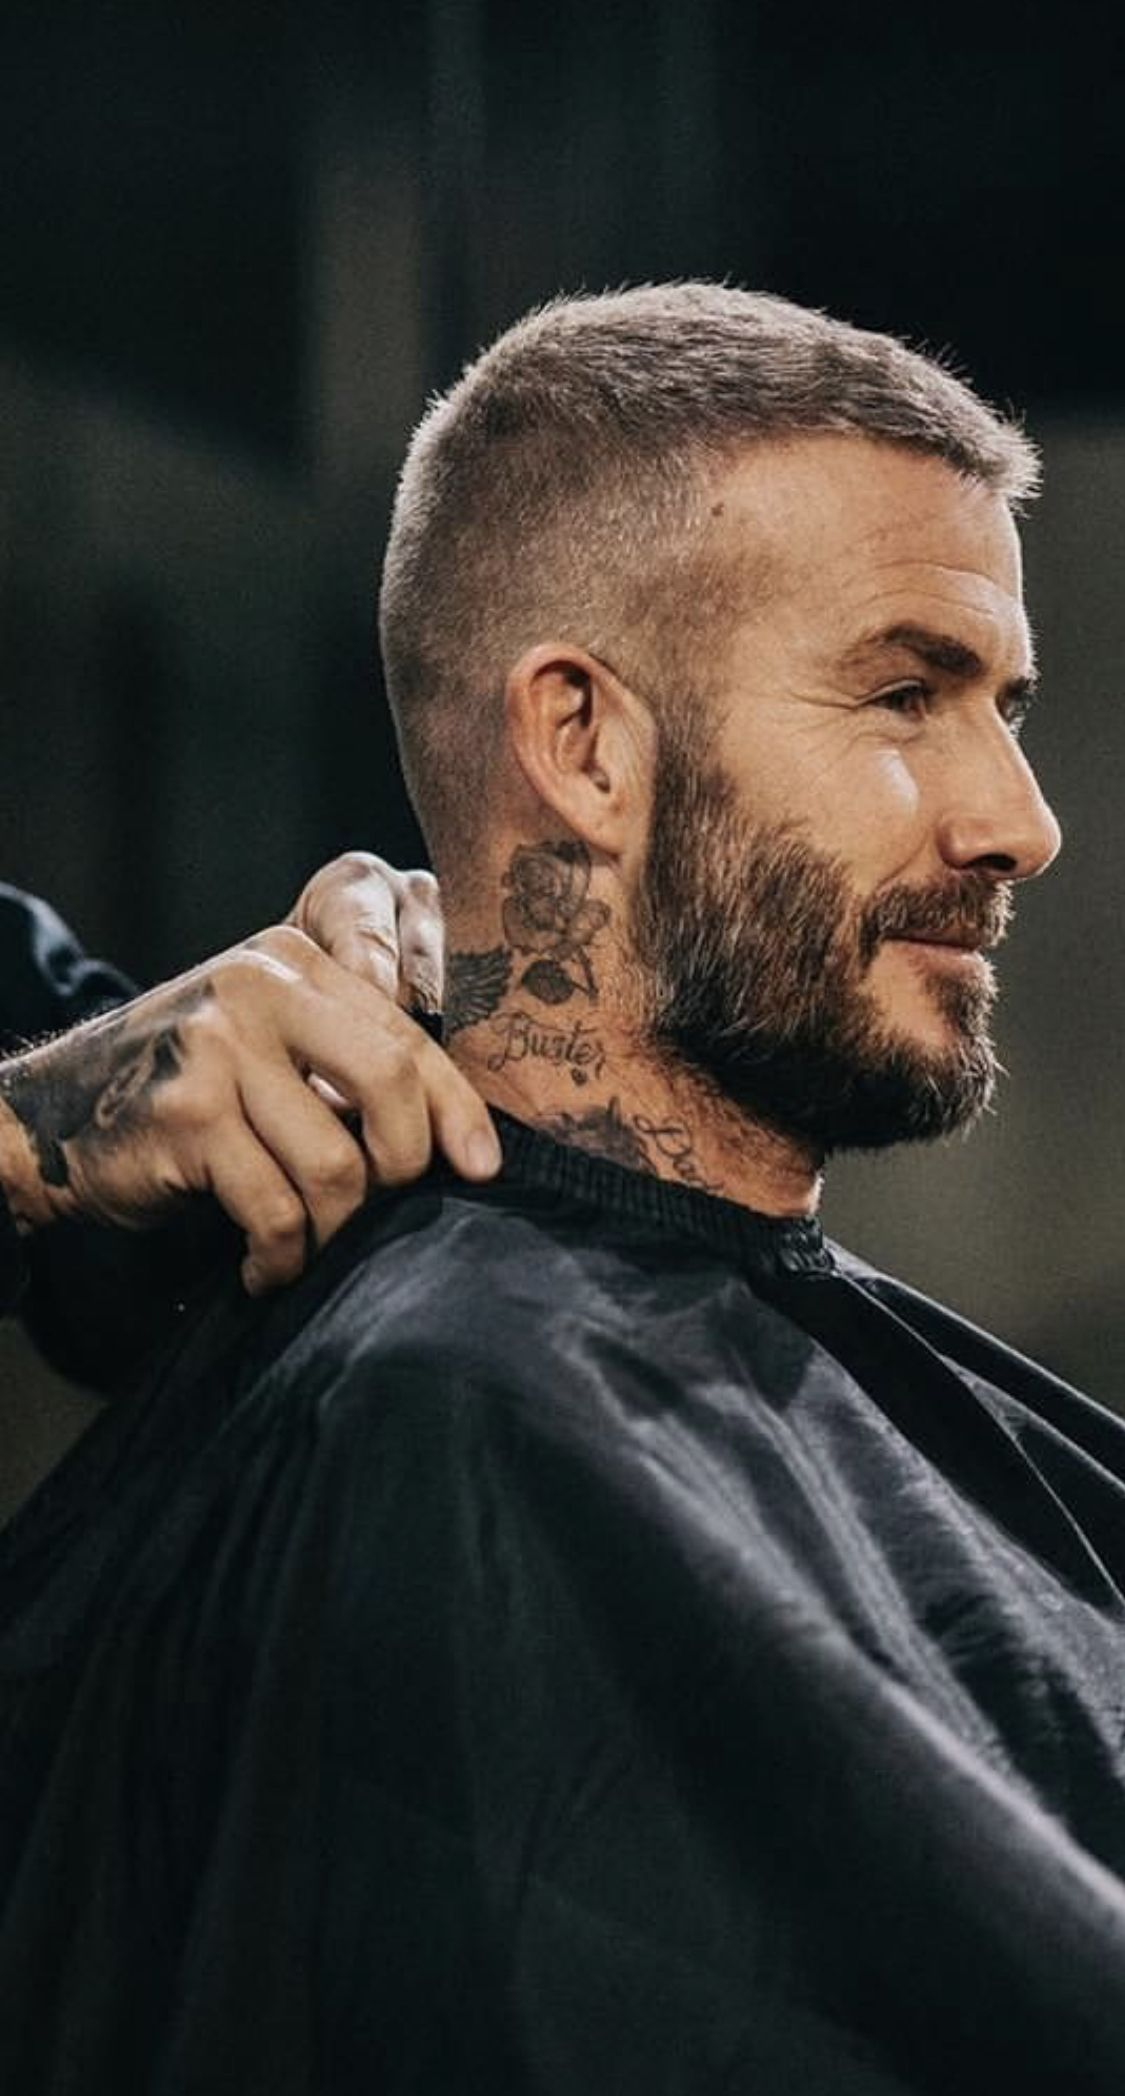 Pin By David Beckham On David Beckham Men S Short Hair David Beckham Haircut Beckham Haircut